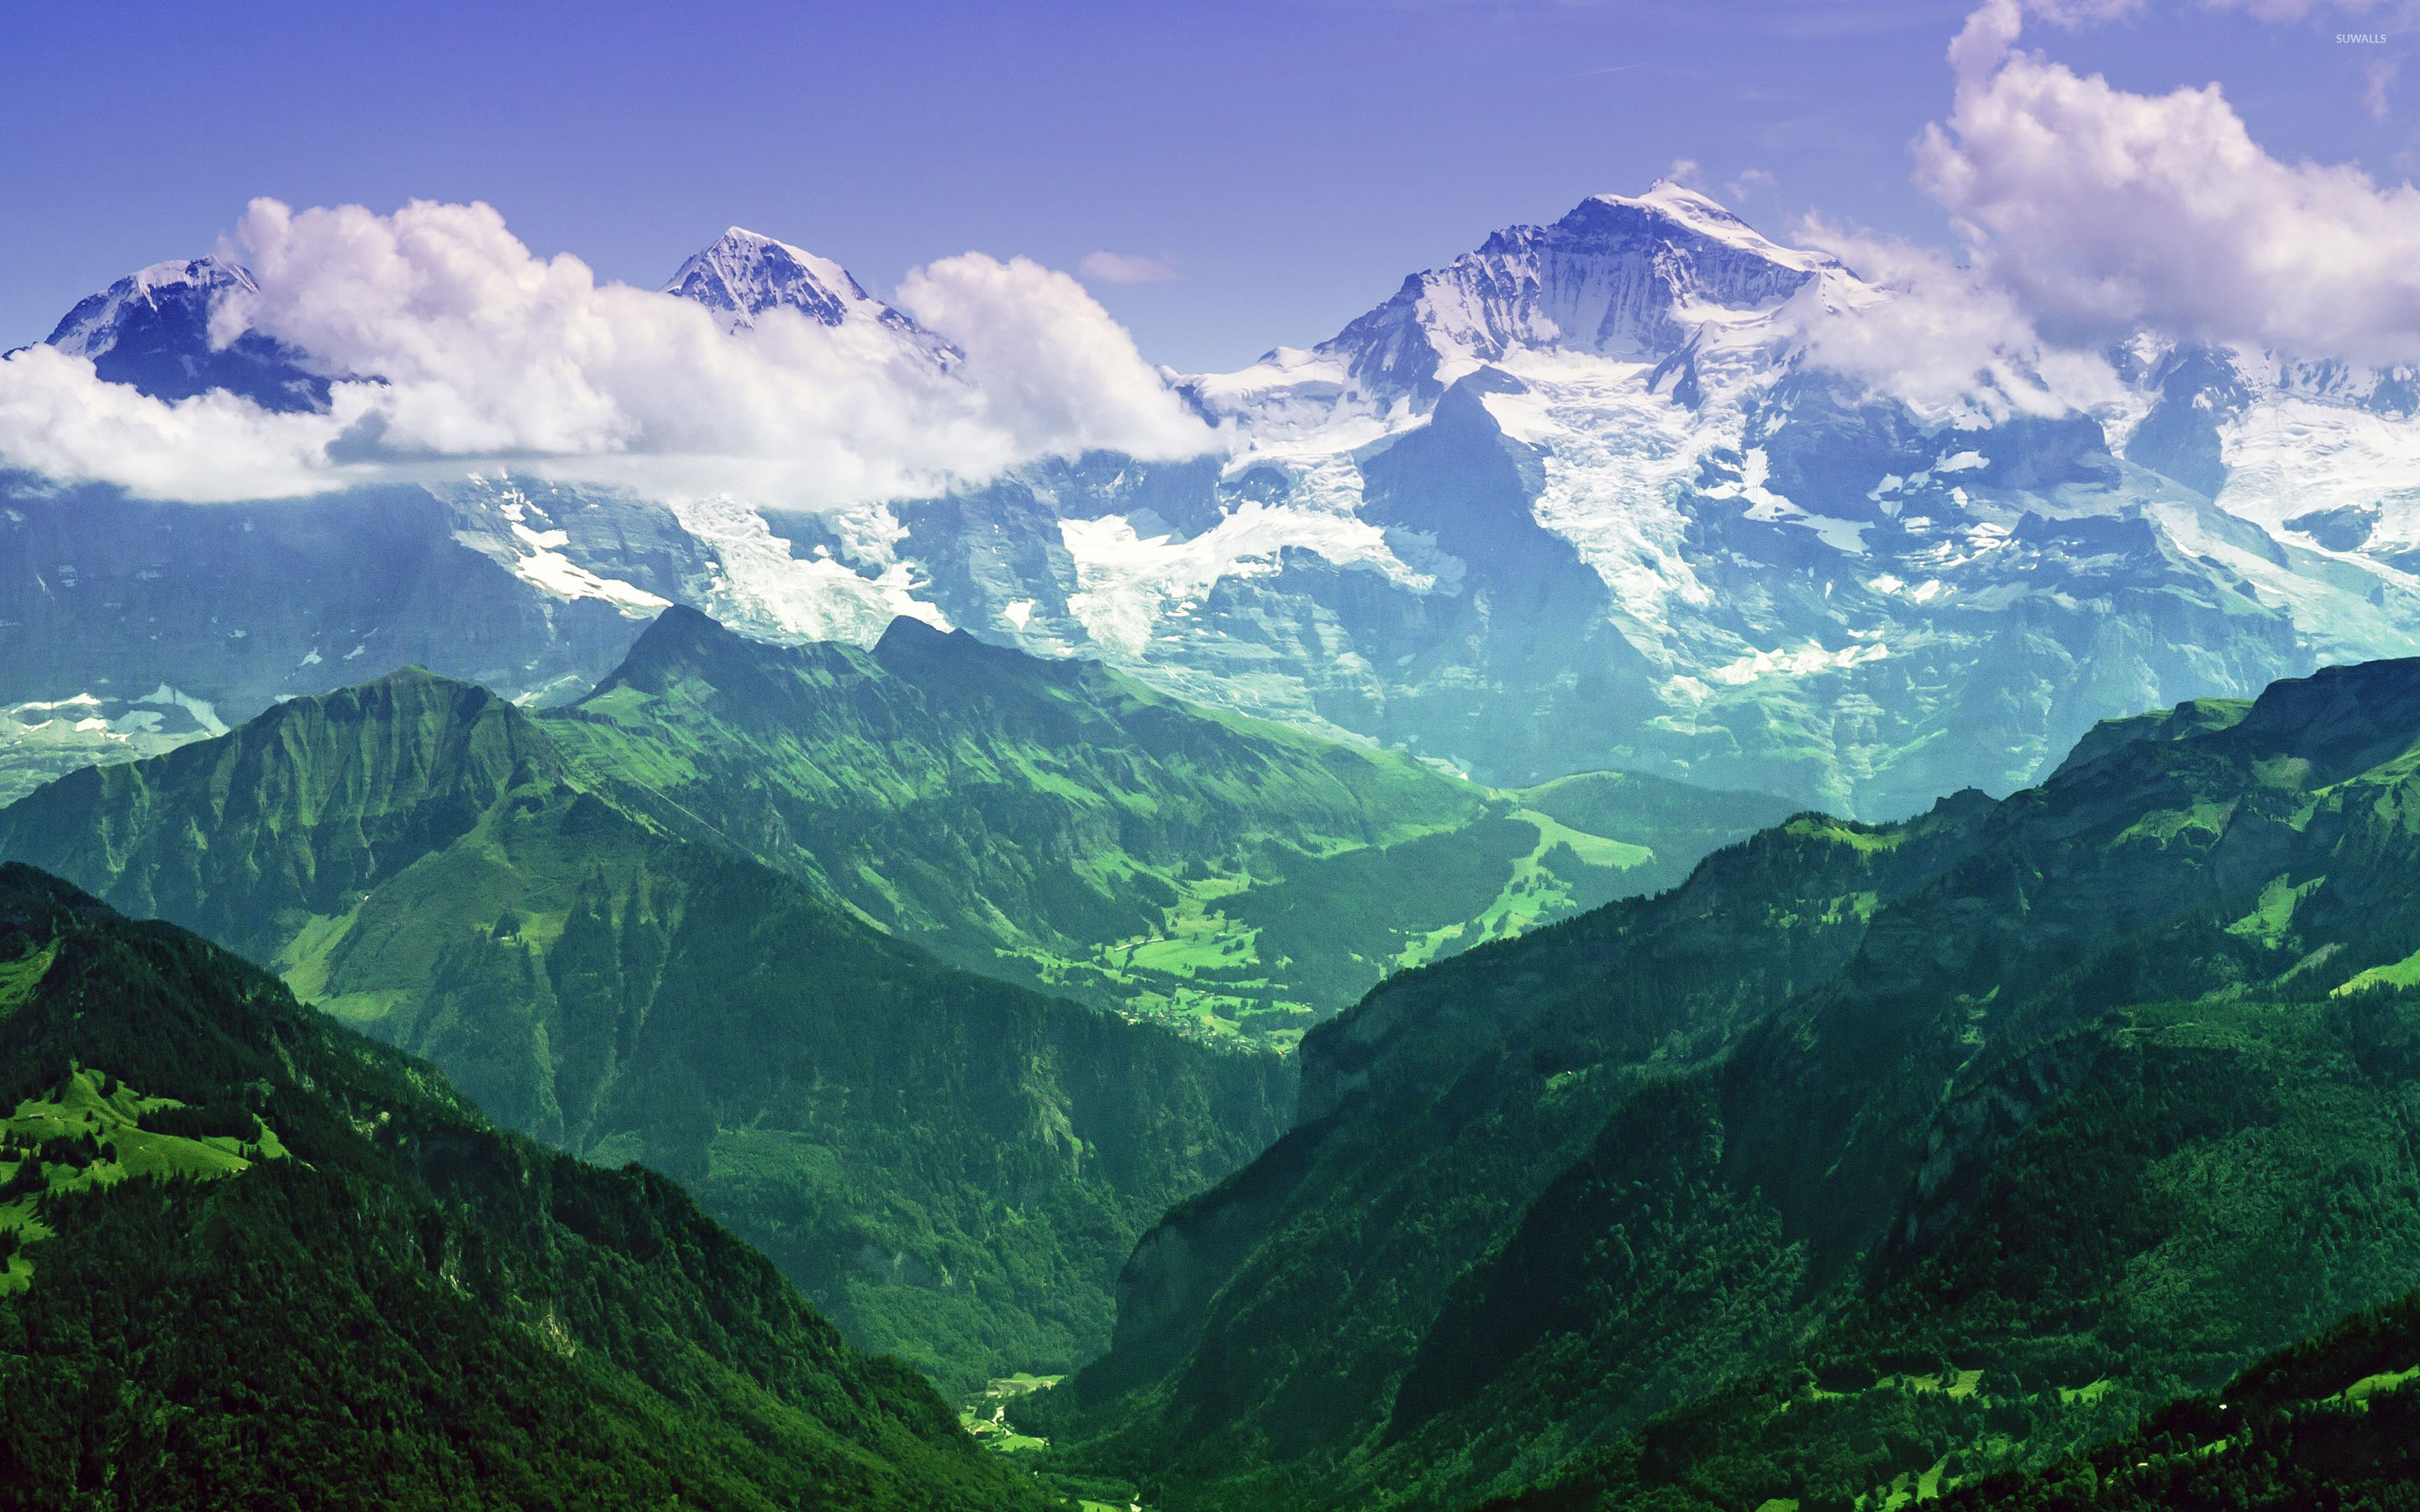 jungfrau, bernese alps, switzerland wallpaper - nature wallpapers